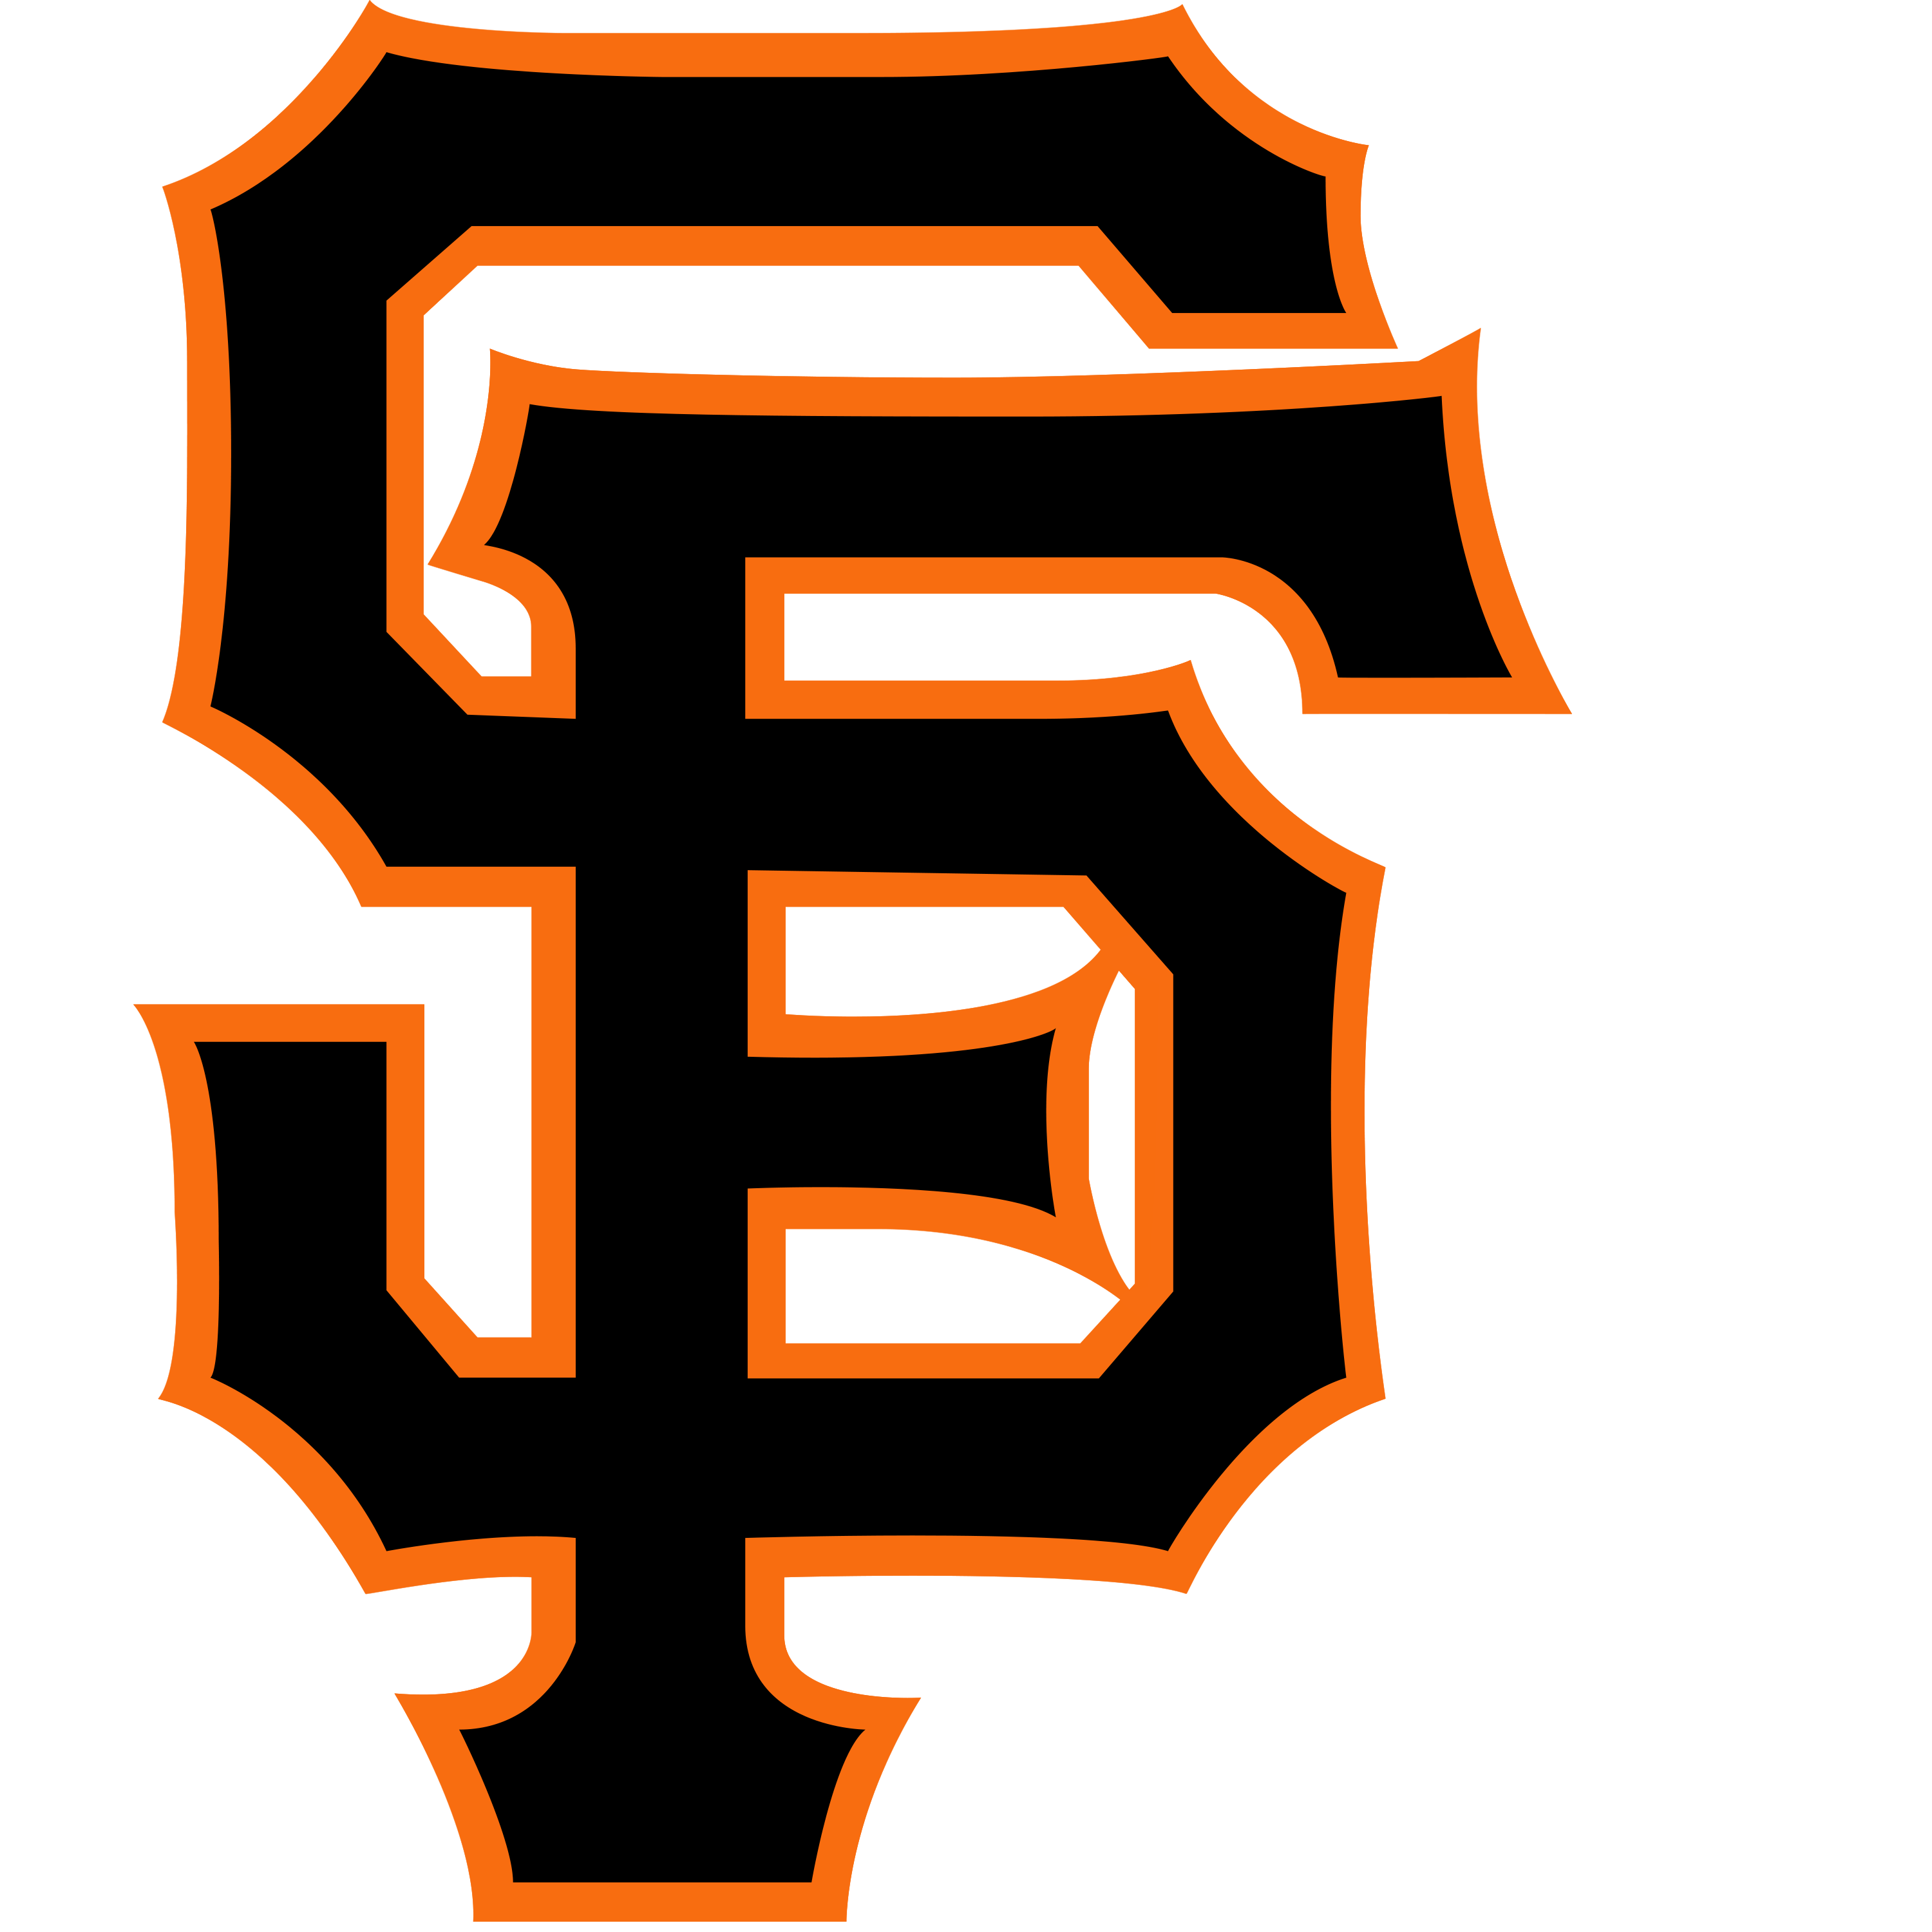 Sf giants baseball clipart image library Gameday Thread 3/28/14: A's (Chavez) at Giants (Lincecum) (7:15 ... image library